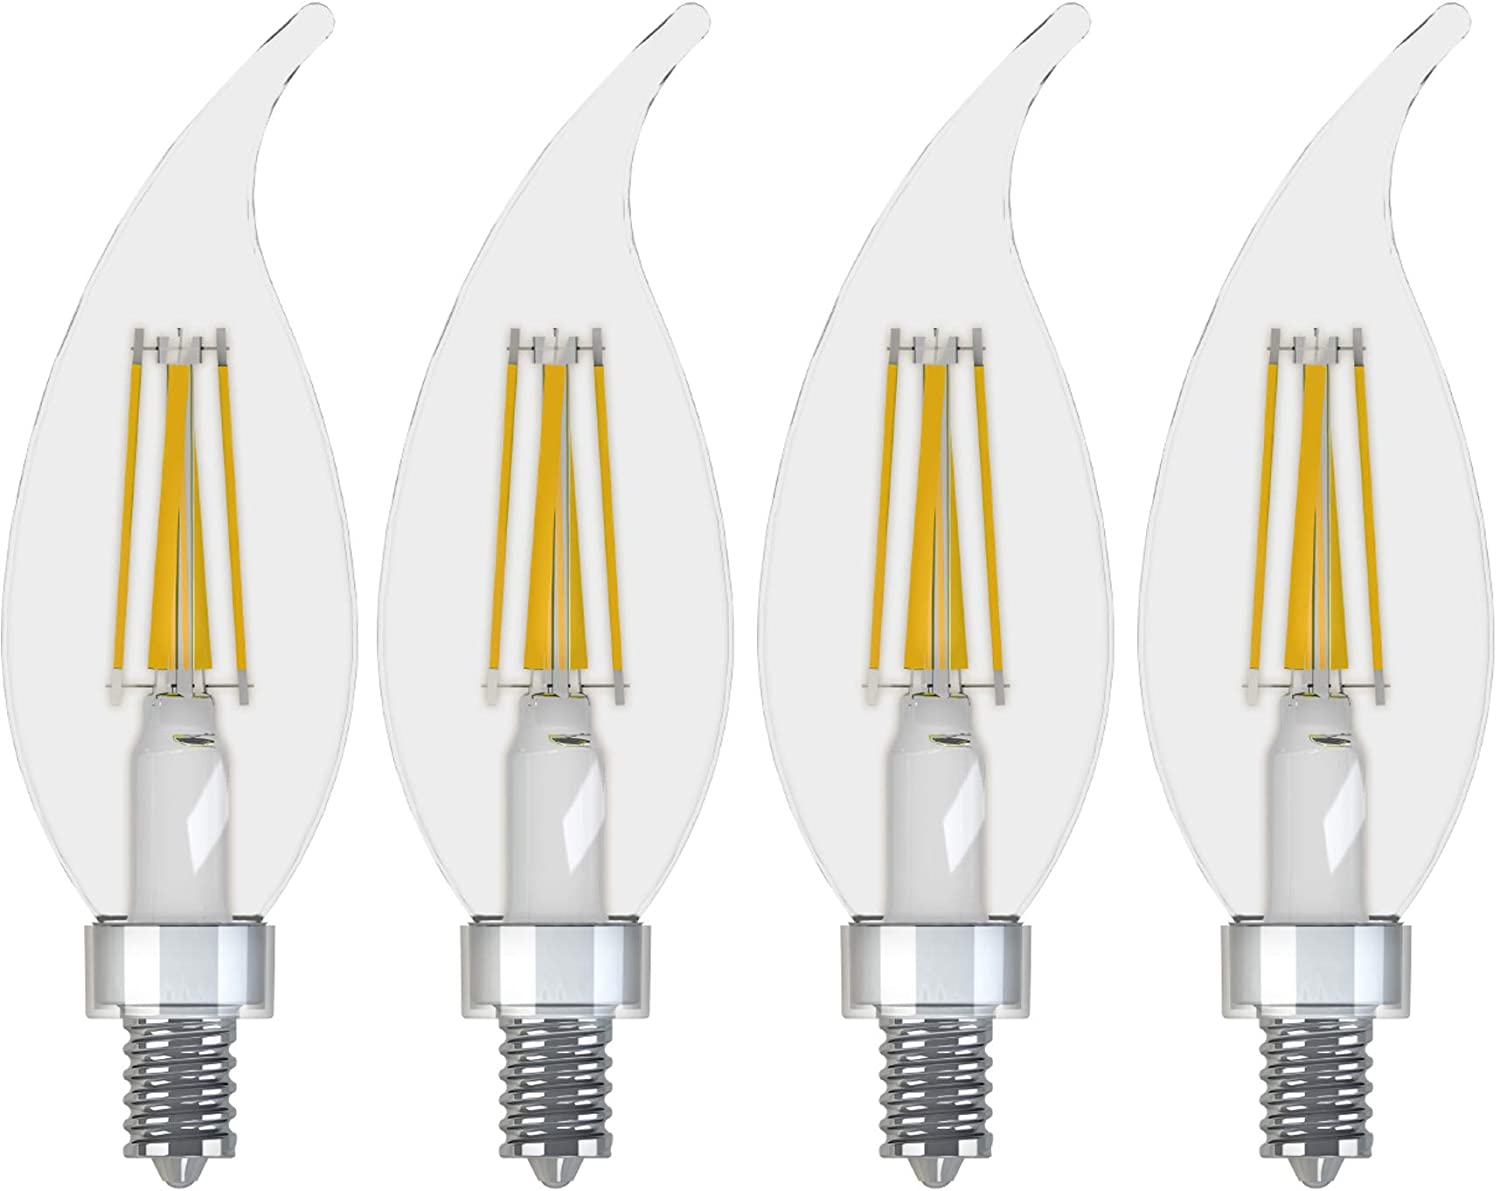 GE Lighting Decorative Outdoor Soft White LED 3.5-watt (40-watt Replacement), 300-Lumen Bent Tip Light Bulb with Candelabra Base, Clear Finish, 4-Pack